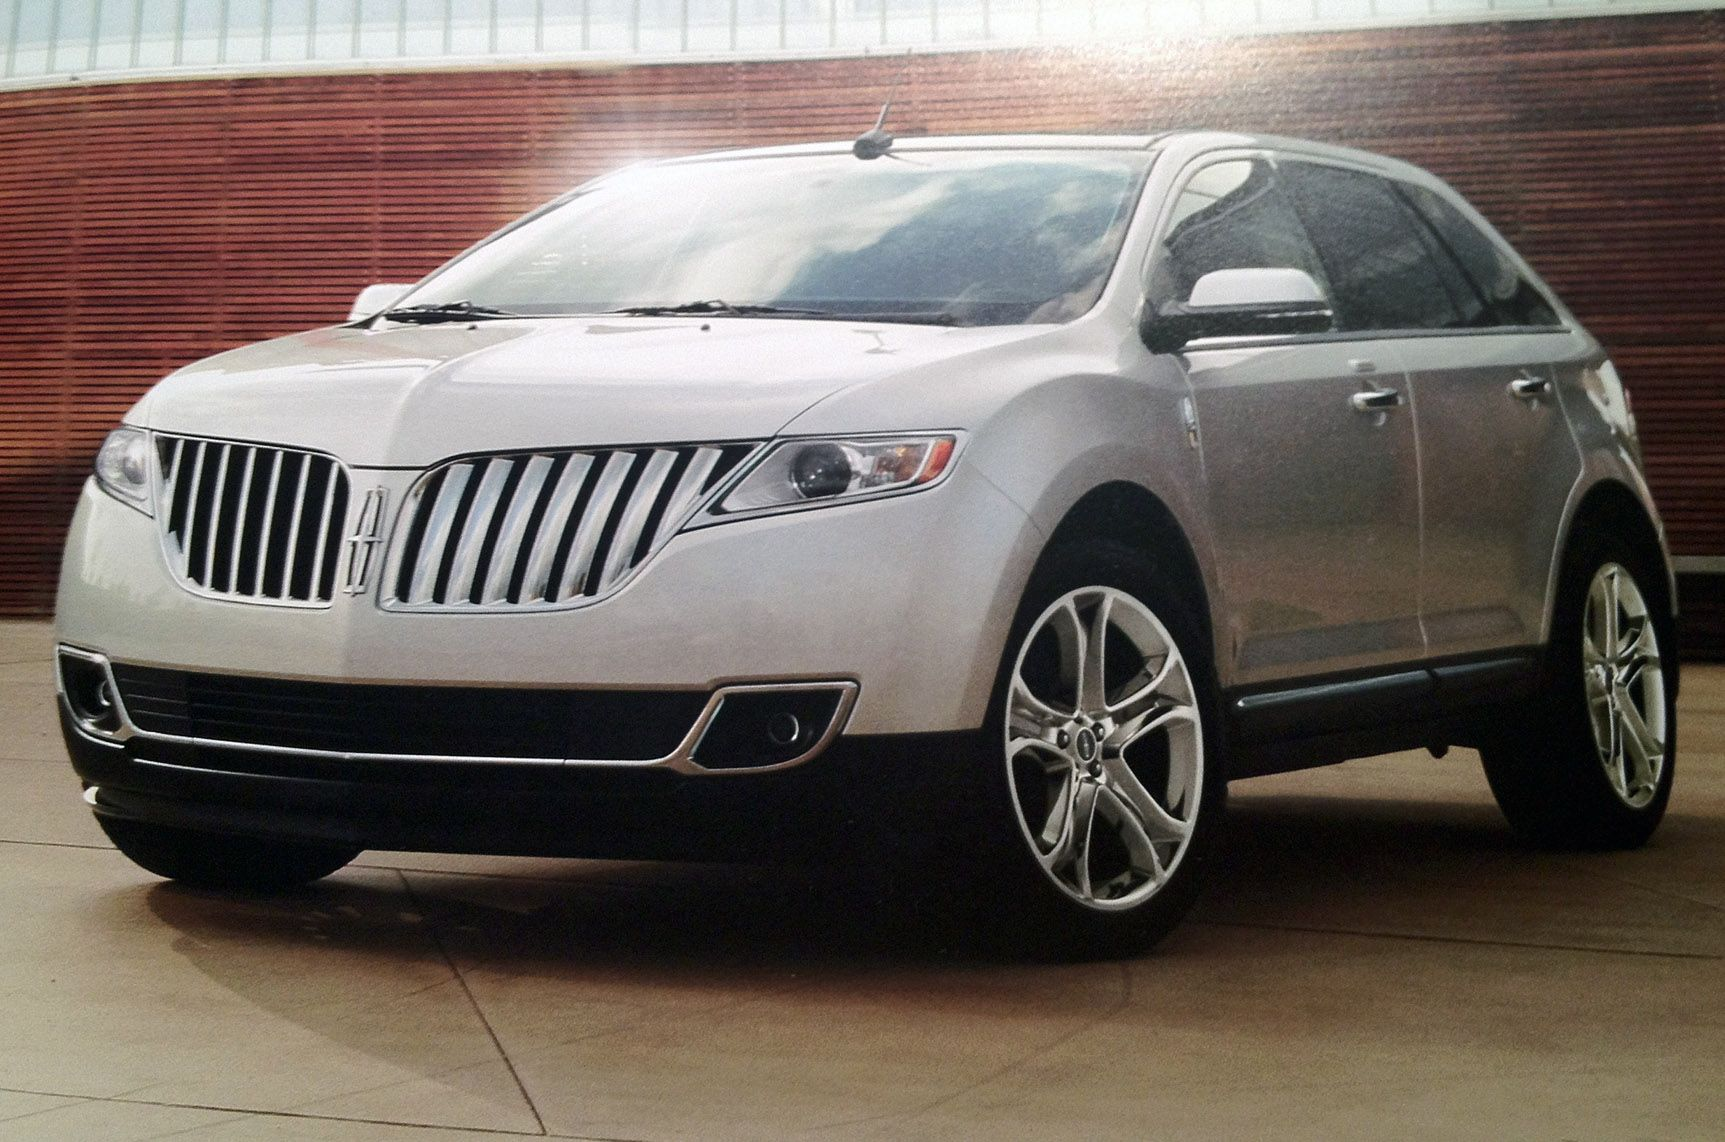 2013 lincoln mkx adds 22 wheels ford motor company discussion